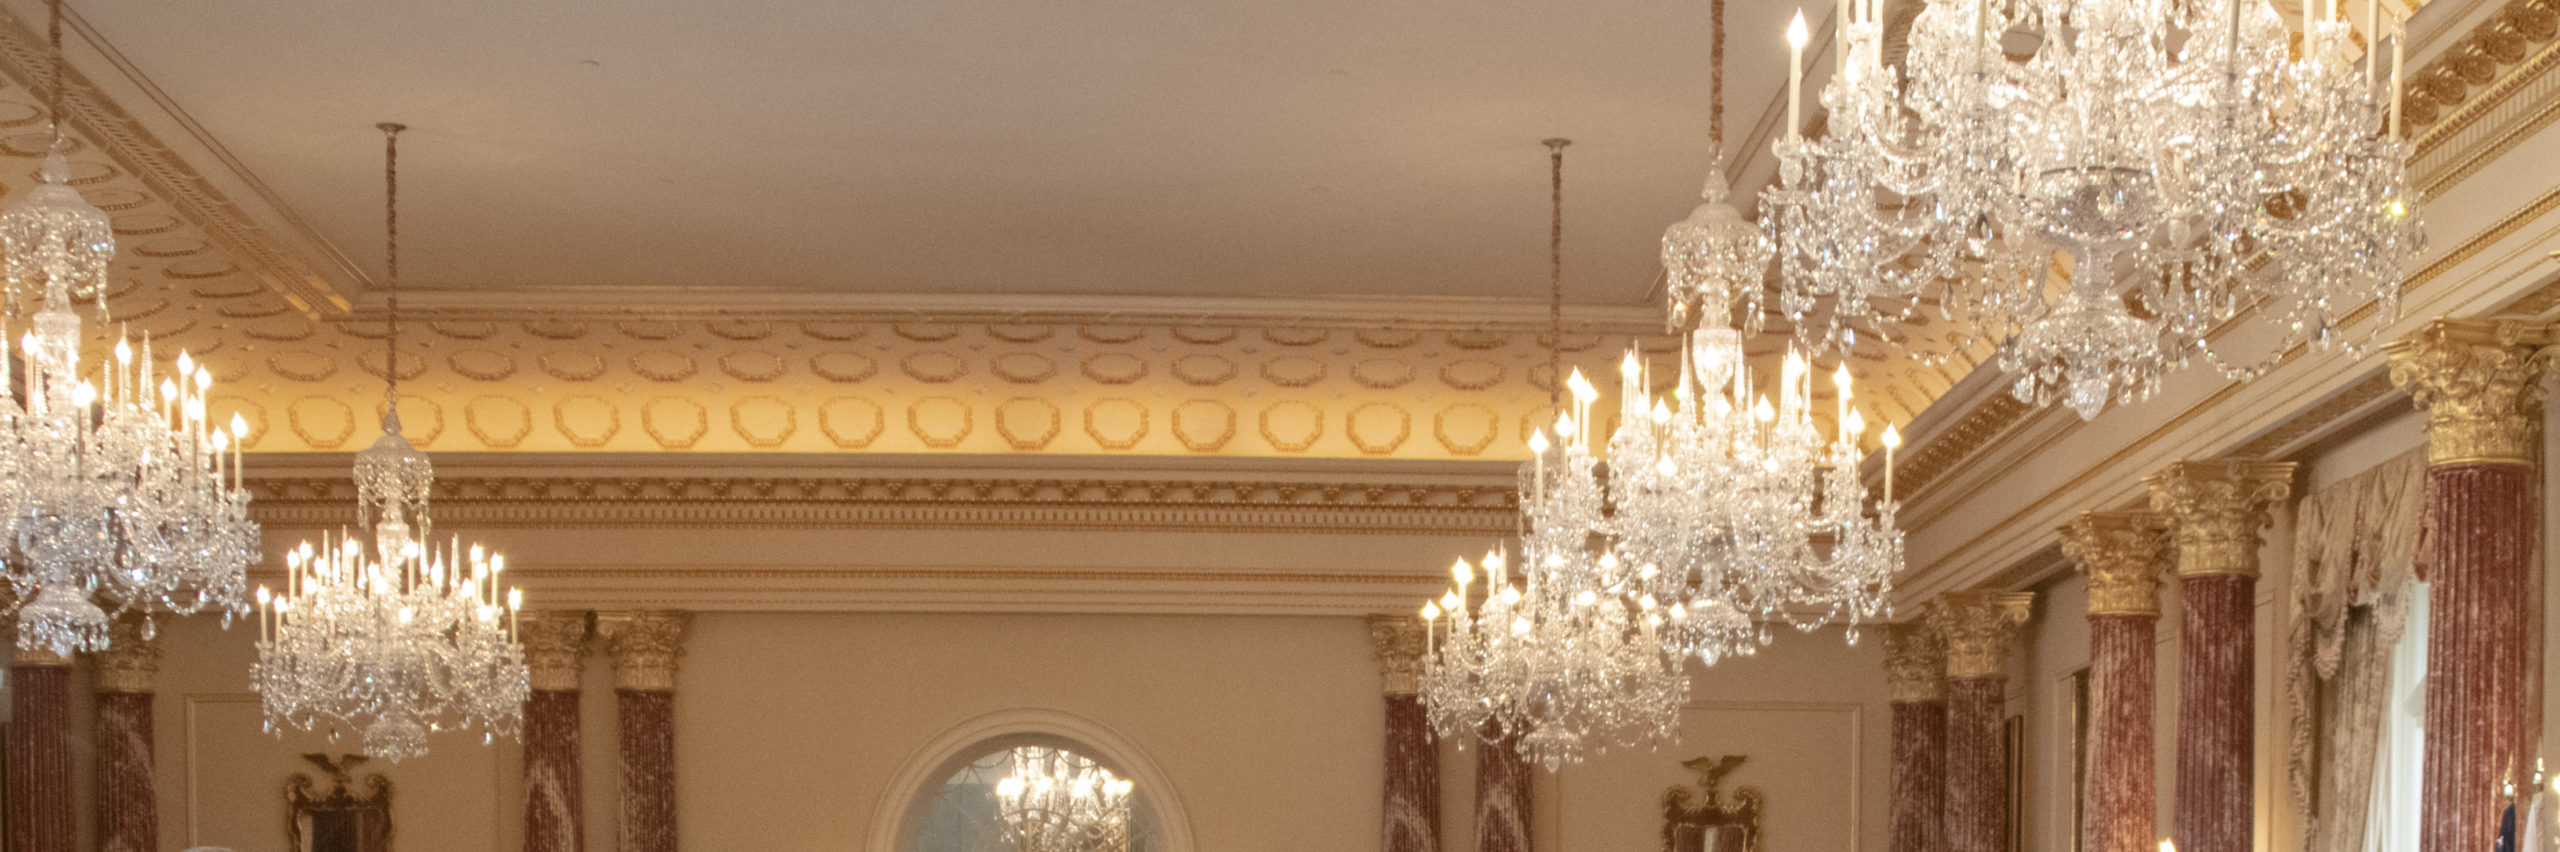 Benjamin Franklin State Dining Room at the Department of State